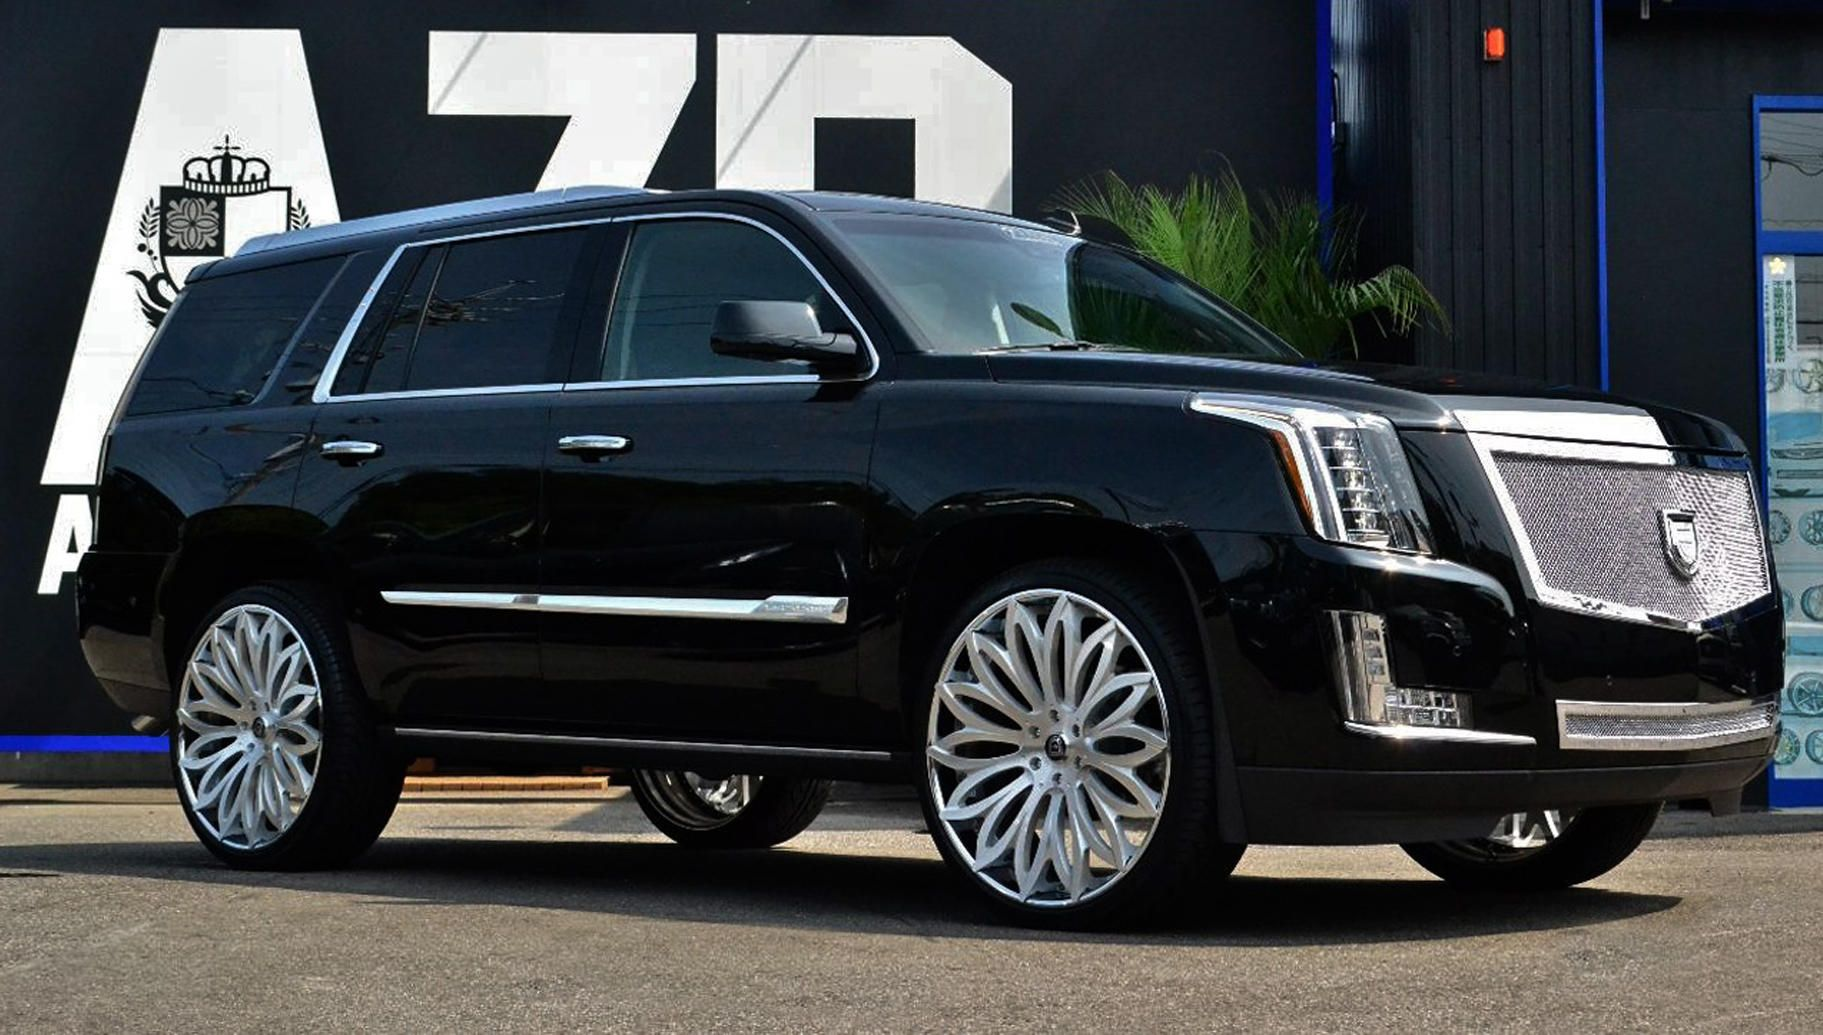 medium resolution of lexani wheels the leader in custom luxury wheels lf 731 brushed center with stainless steel chrome lip on the 2015 cadillac escalade